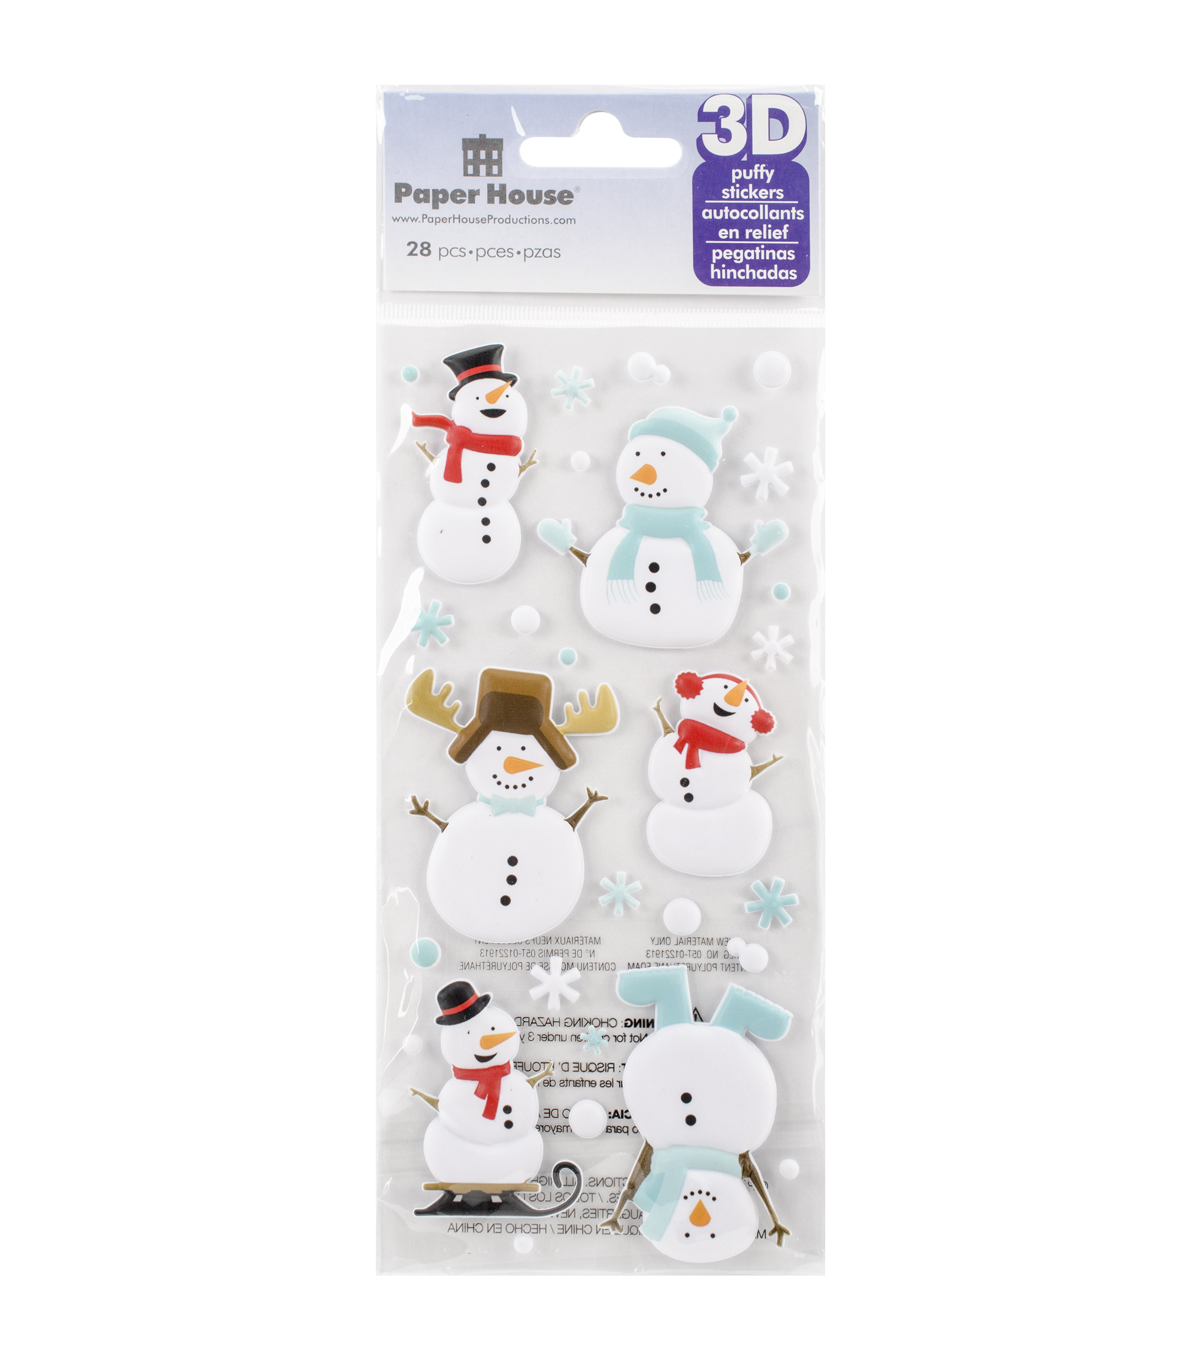 Paper House Puffy Stickers-Snowman